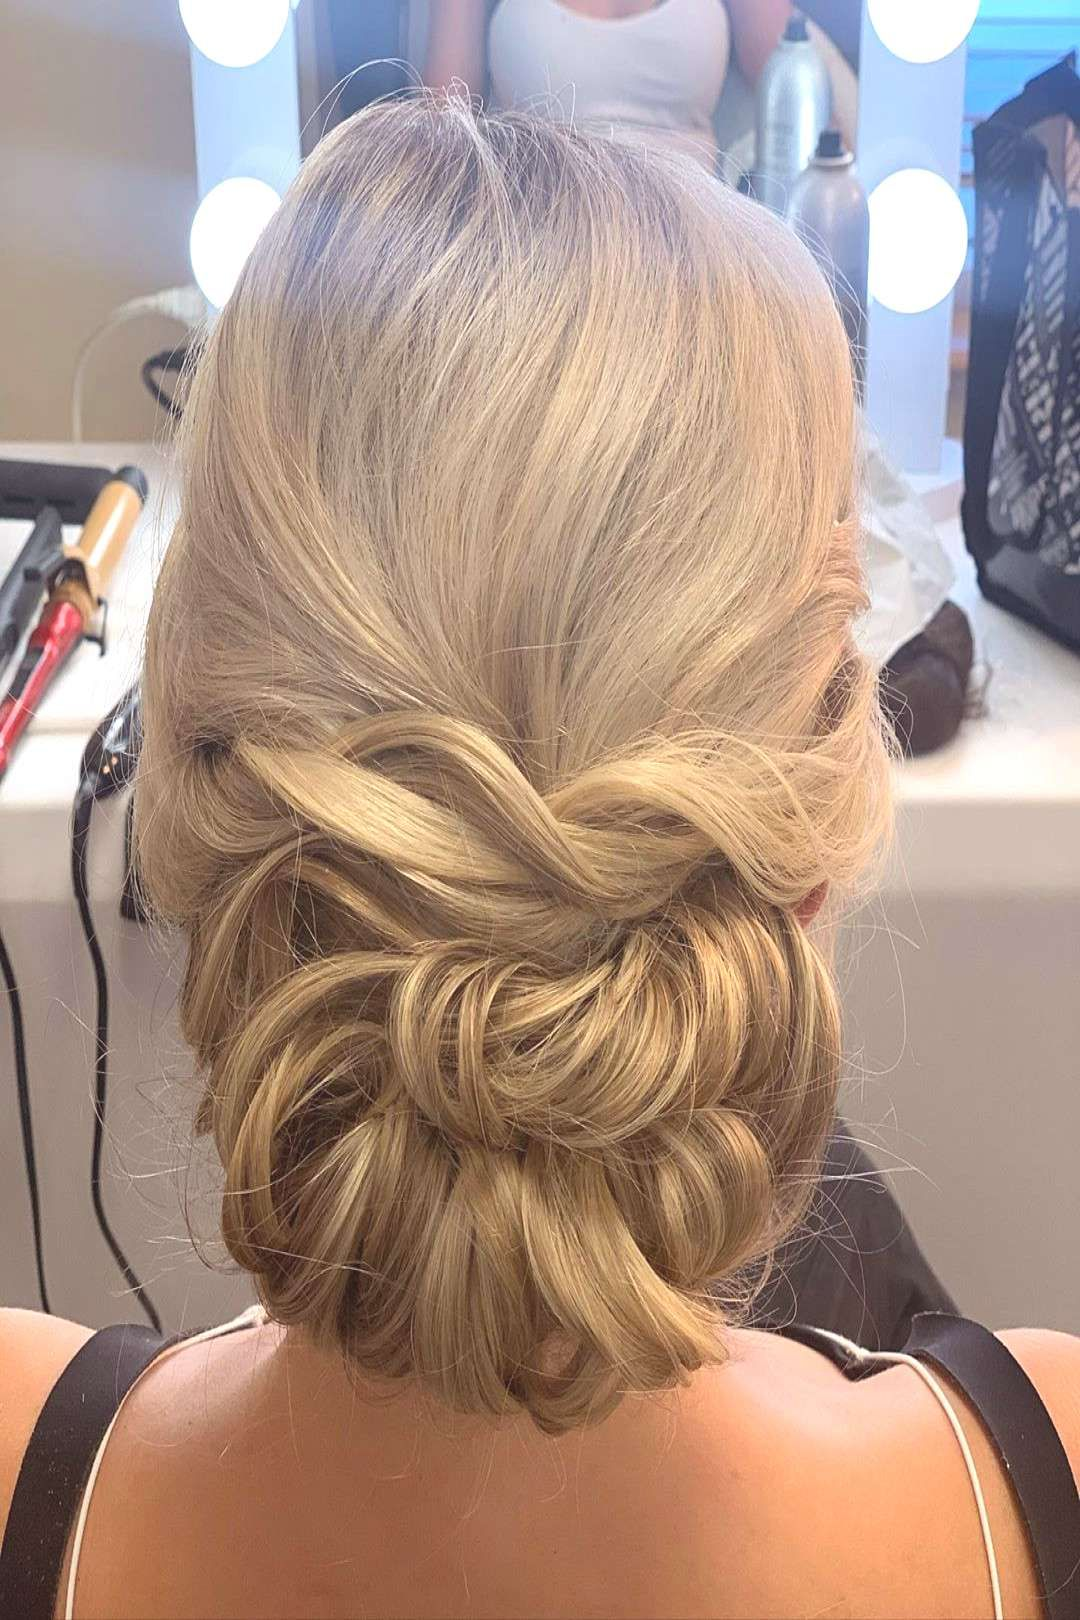 Hair for our styled shoot today! * * * #mnbride #weddinginspo #we